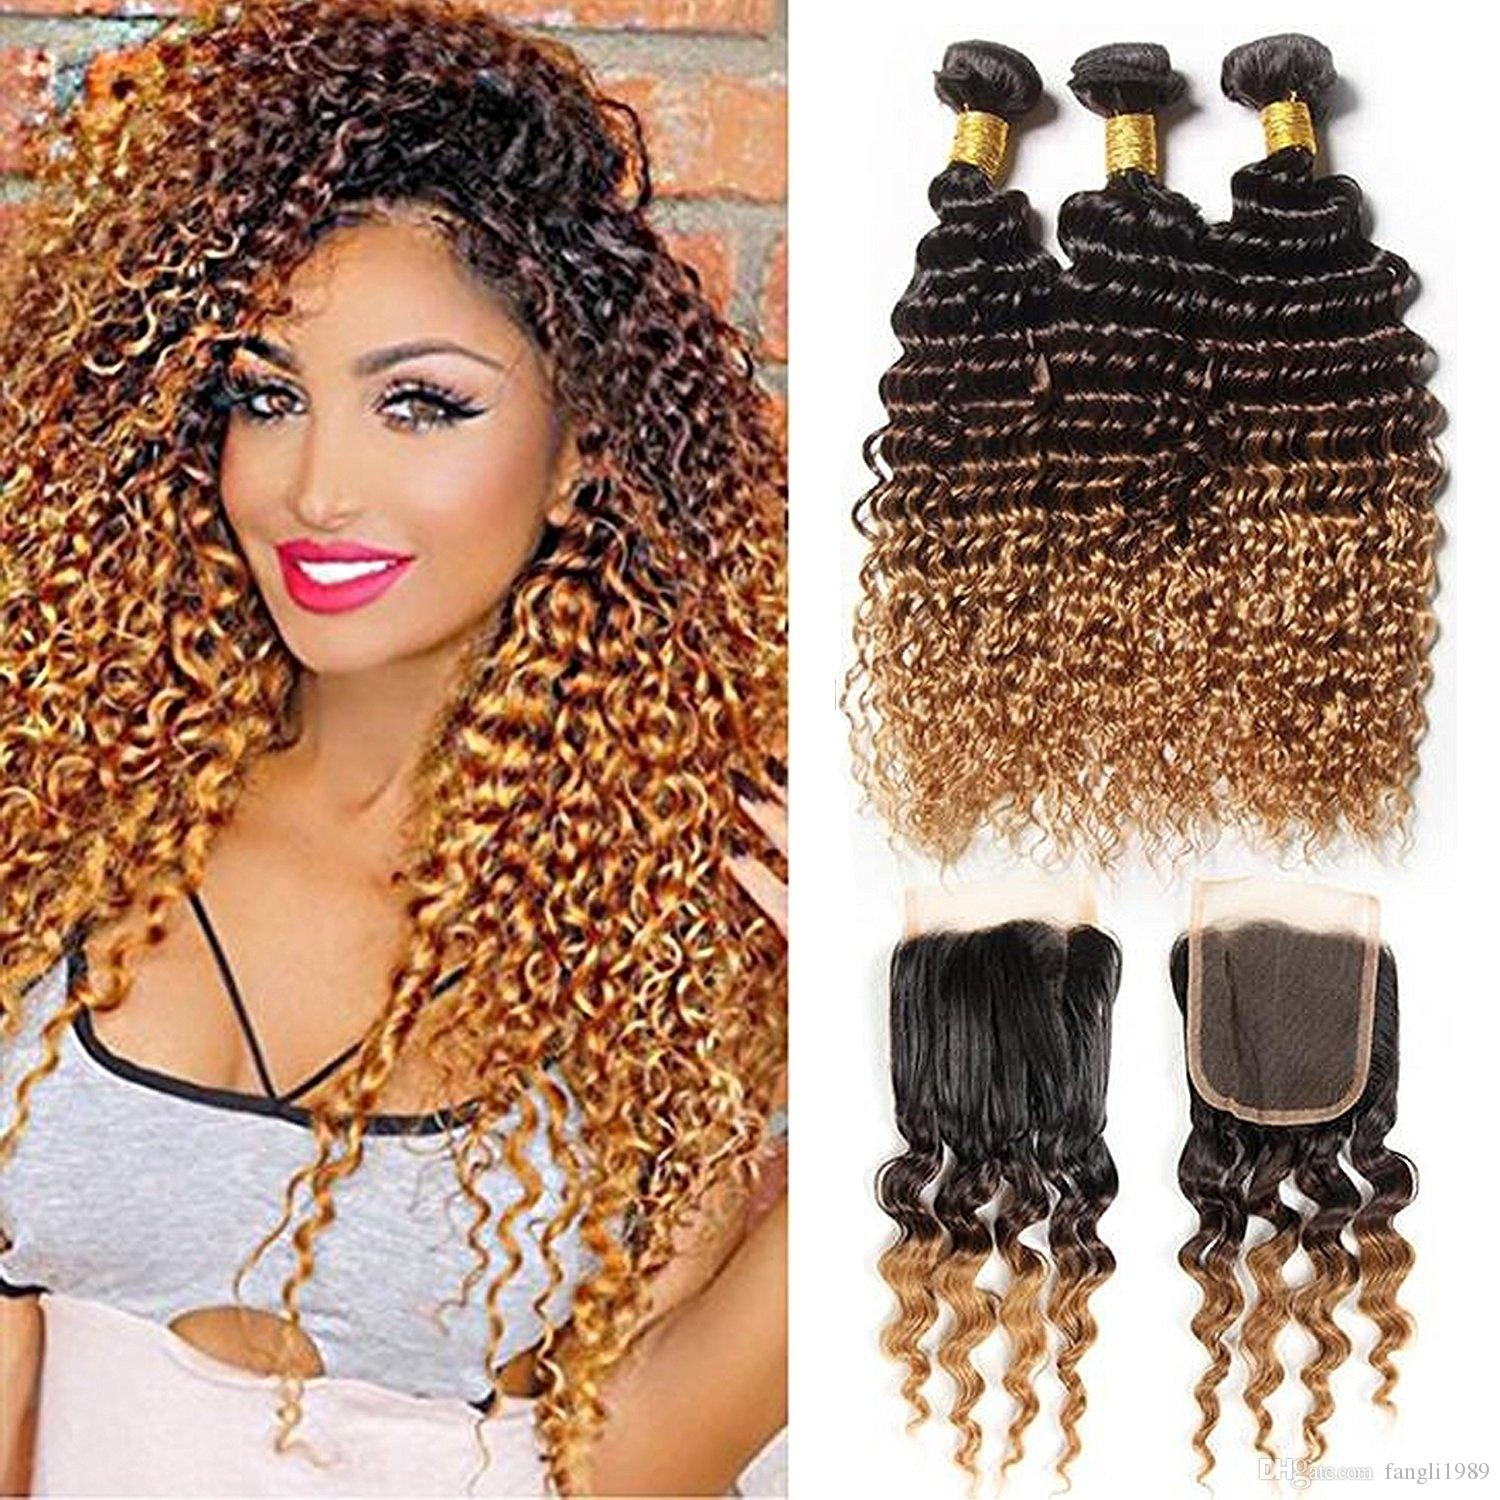 Peruvian Kinky Curly Virgin Hair With Closure Ombre 3 Bundles Human Hair Weave With Lace Closure (20 closure with22 24 26, 1B/4/27)